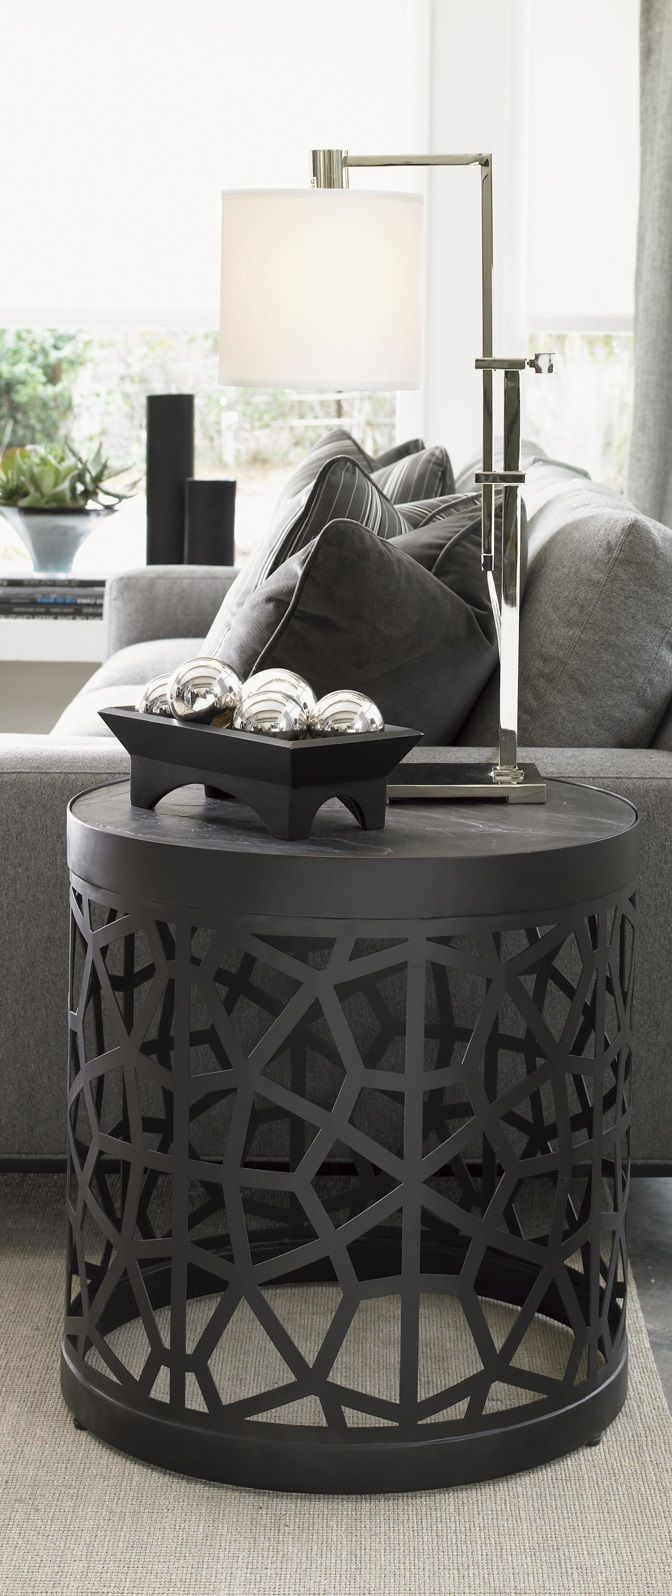 Side Tables Accent End Interiordesign Casegoodsideas Contemporary